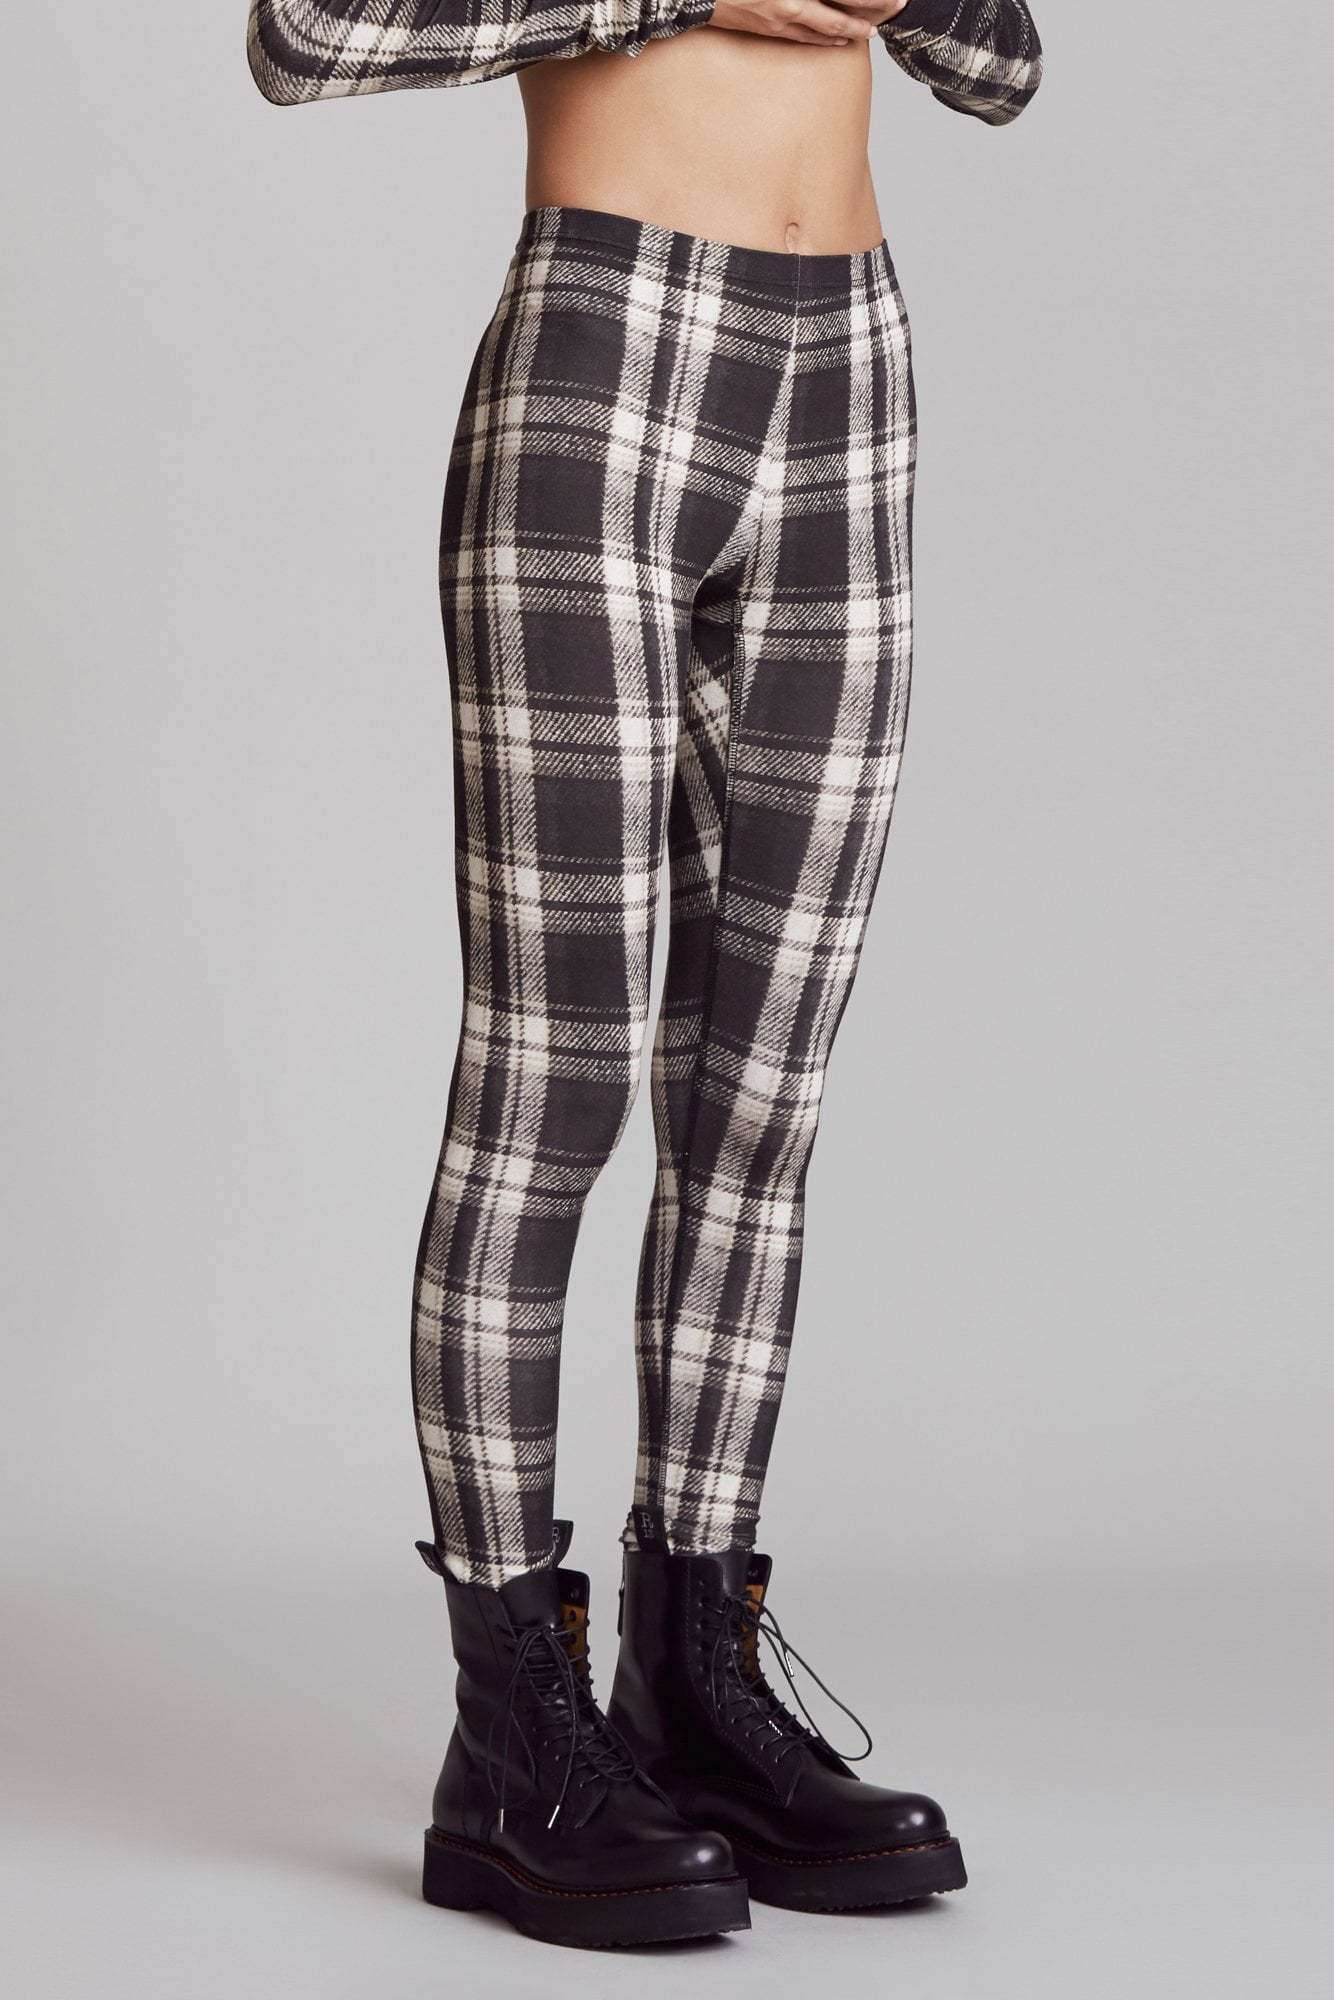 Black and White Plaid Legging